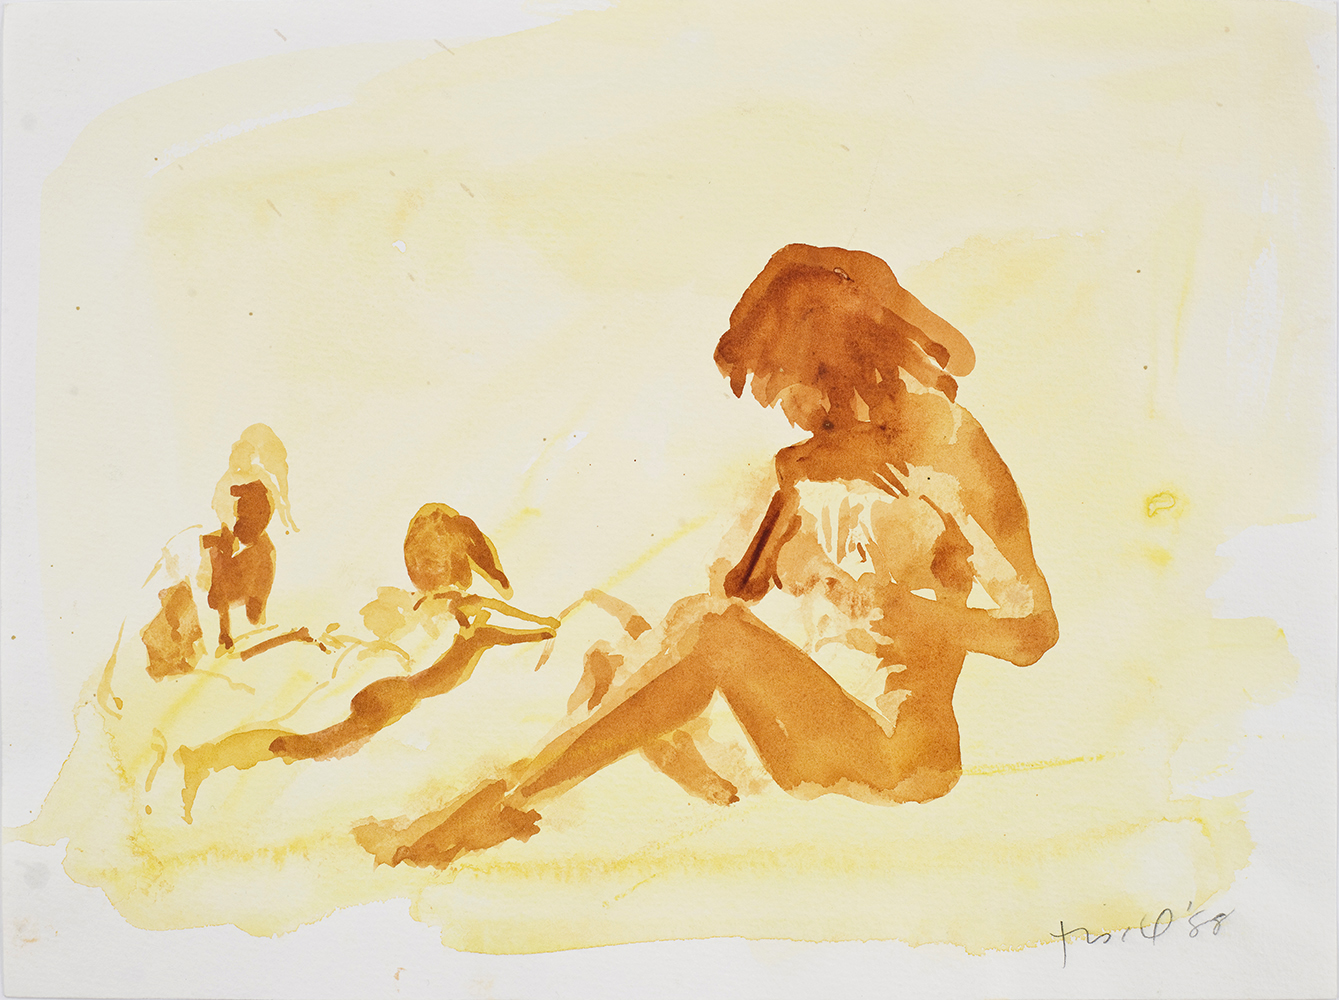 """Untitled, 1988, watercolor on paper, 9.5"""" x 12.75"""""""